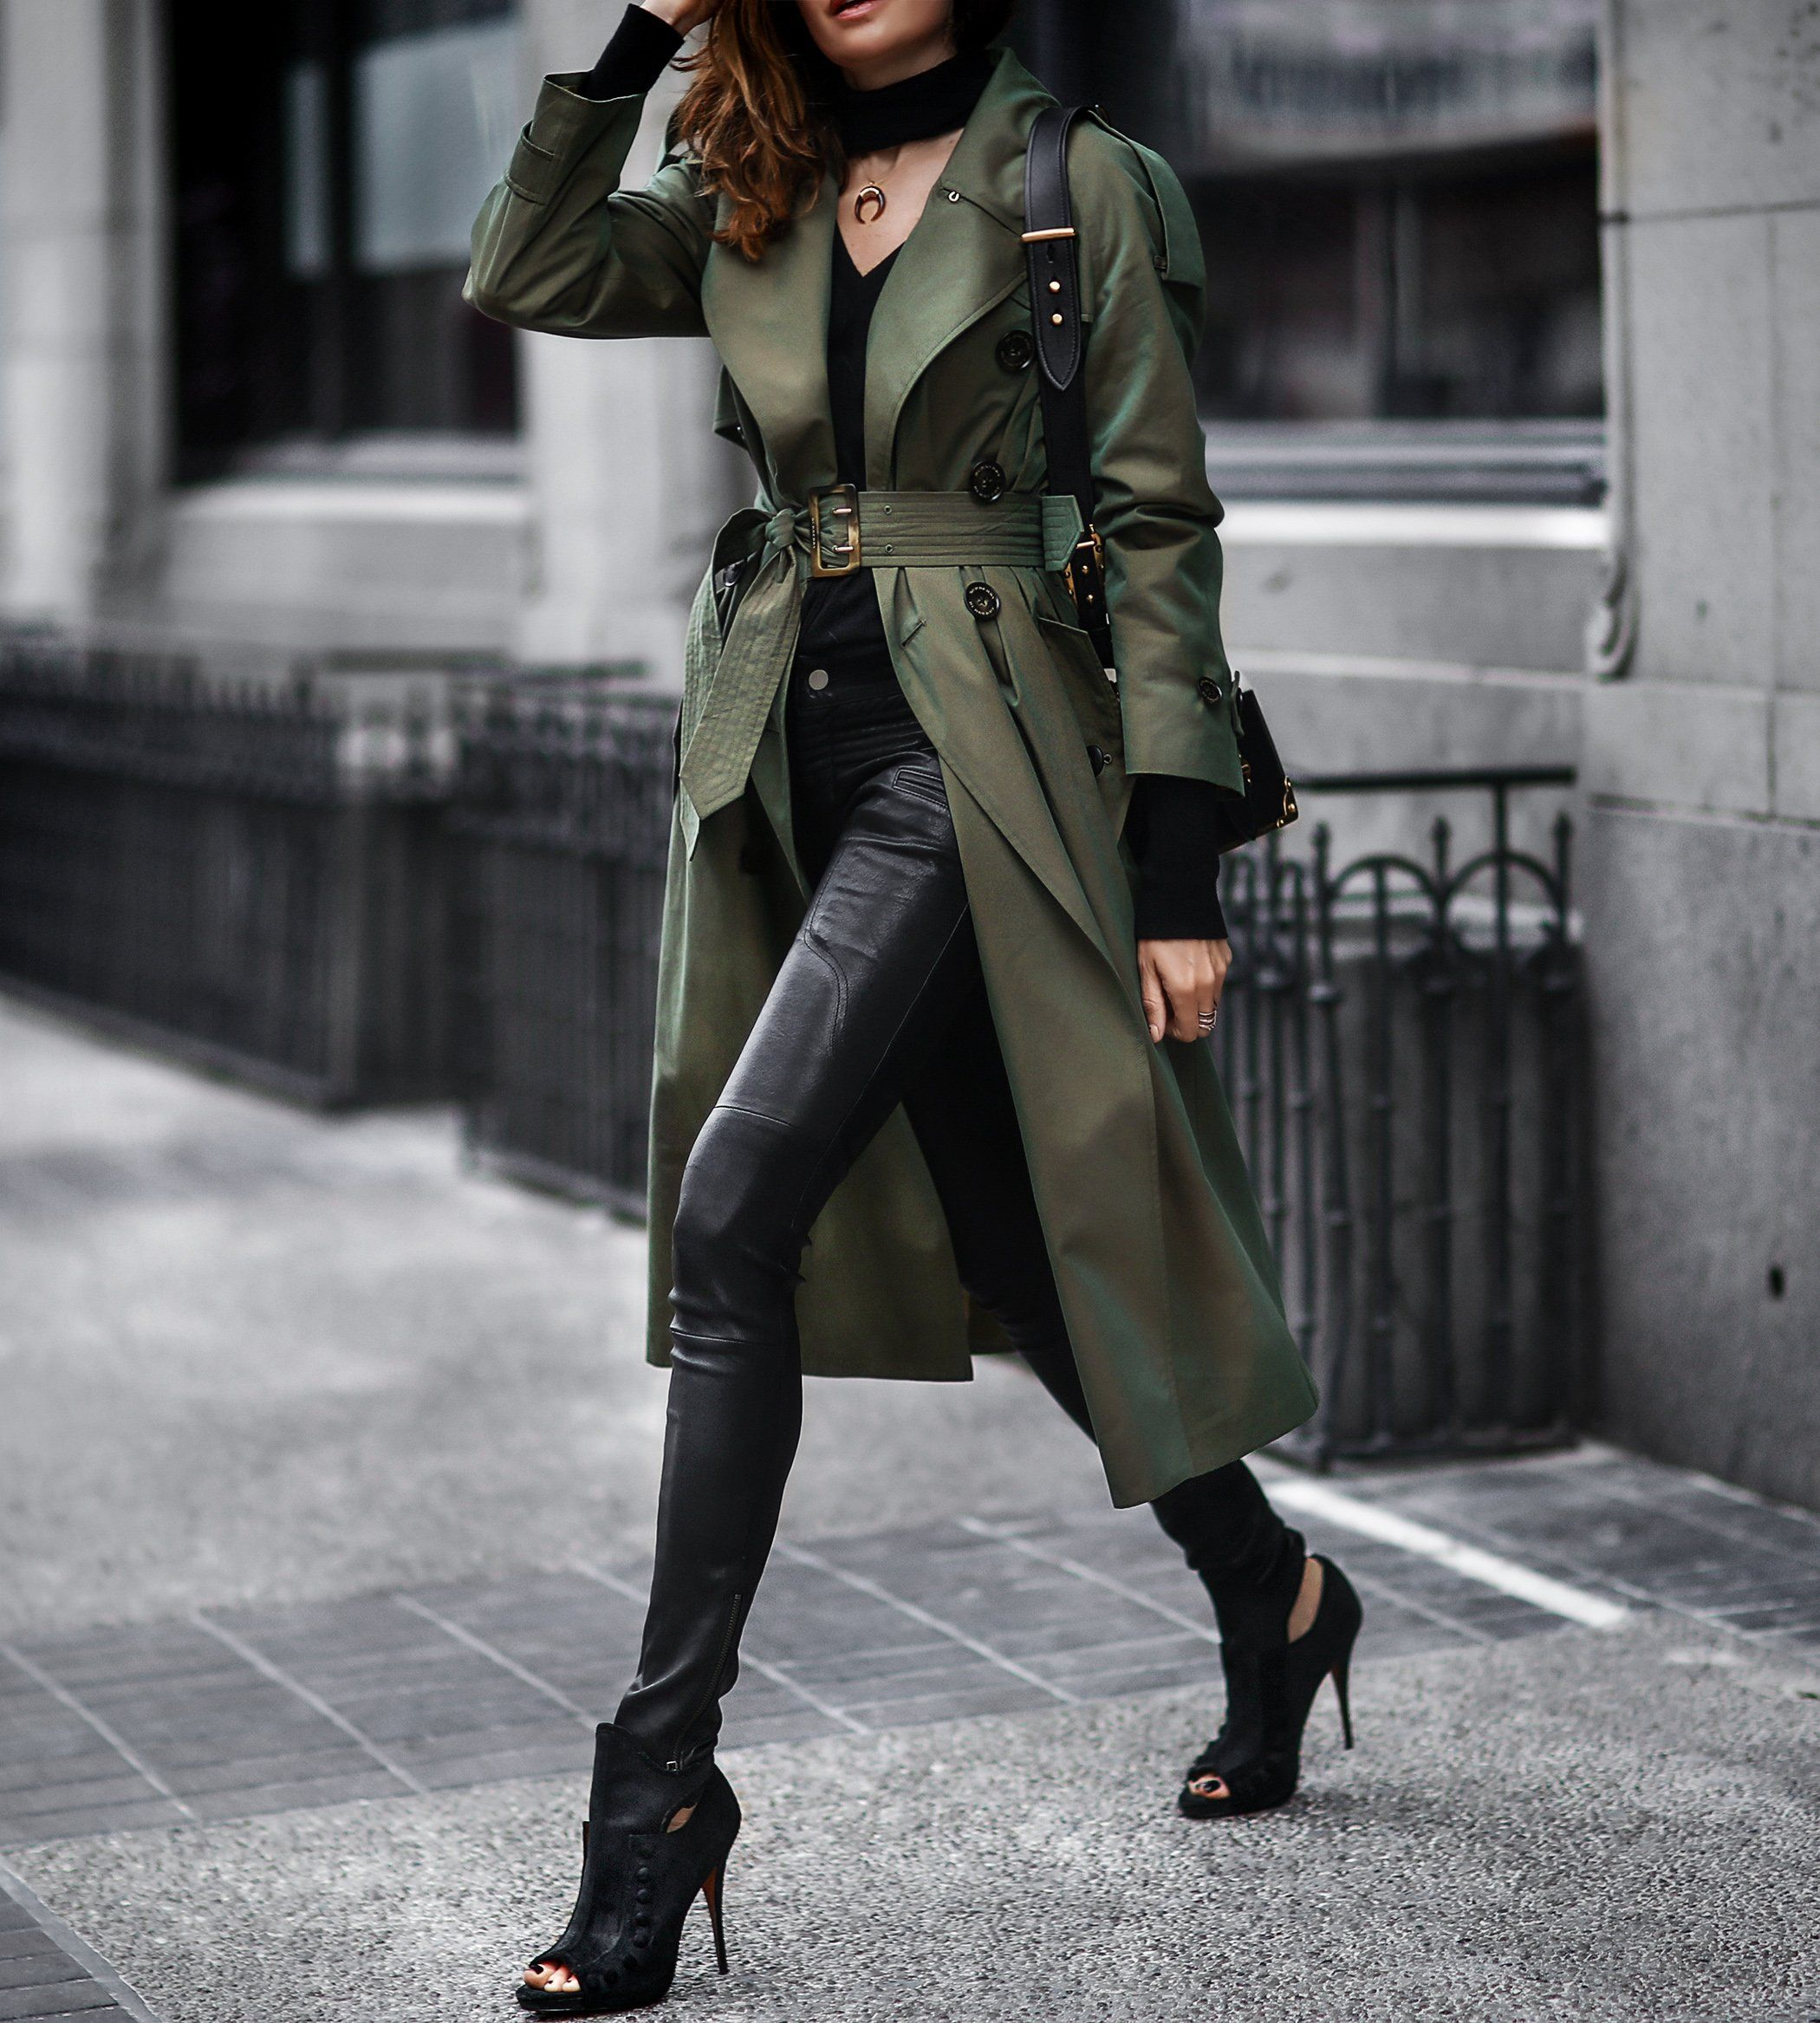 burberry trench coat, black leather pants Rocker chic